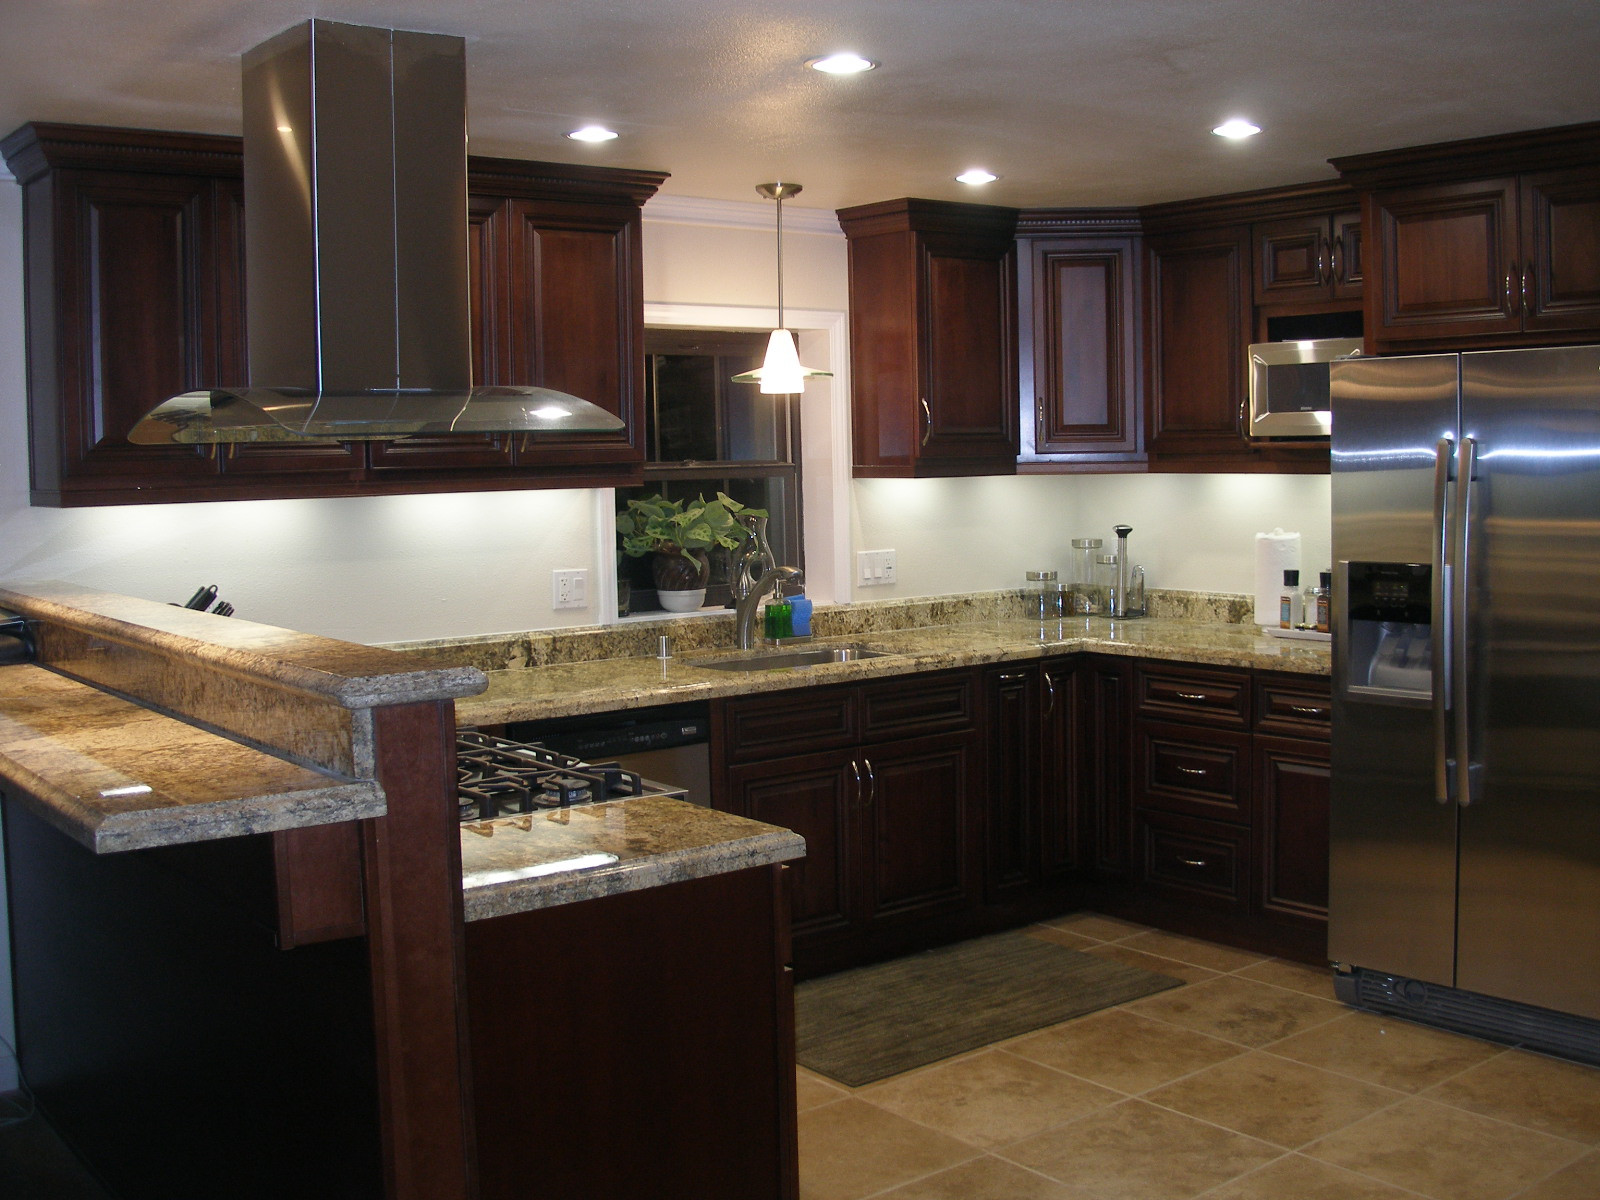 kitchen remodel how to remodel kitchen CALL FOR YOUR FREE KITCHEN REMODEL ESTIMATE TODAY or